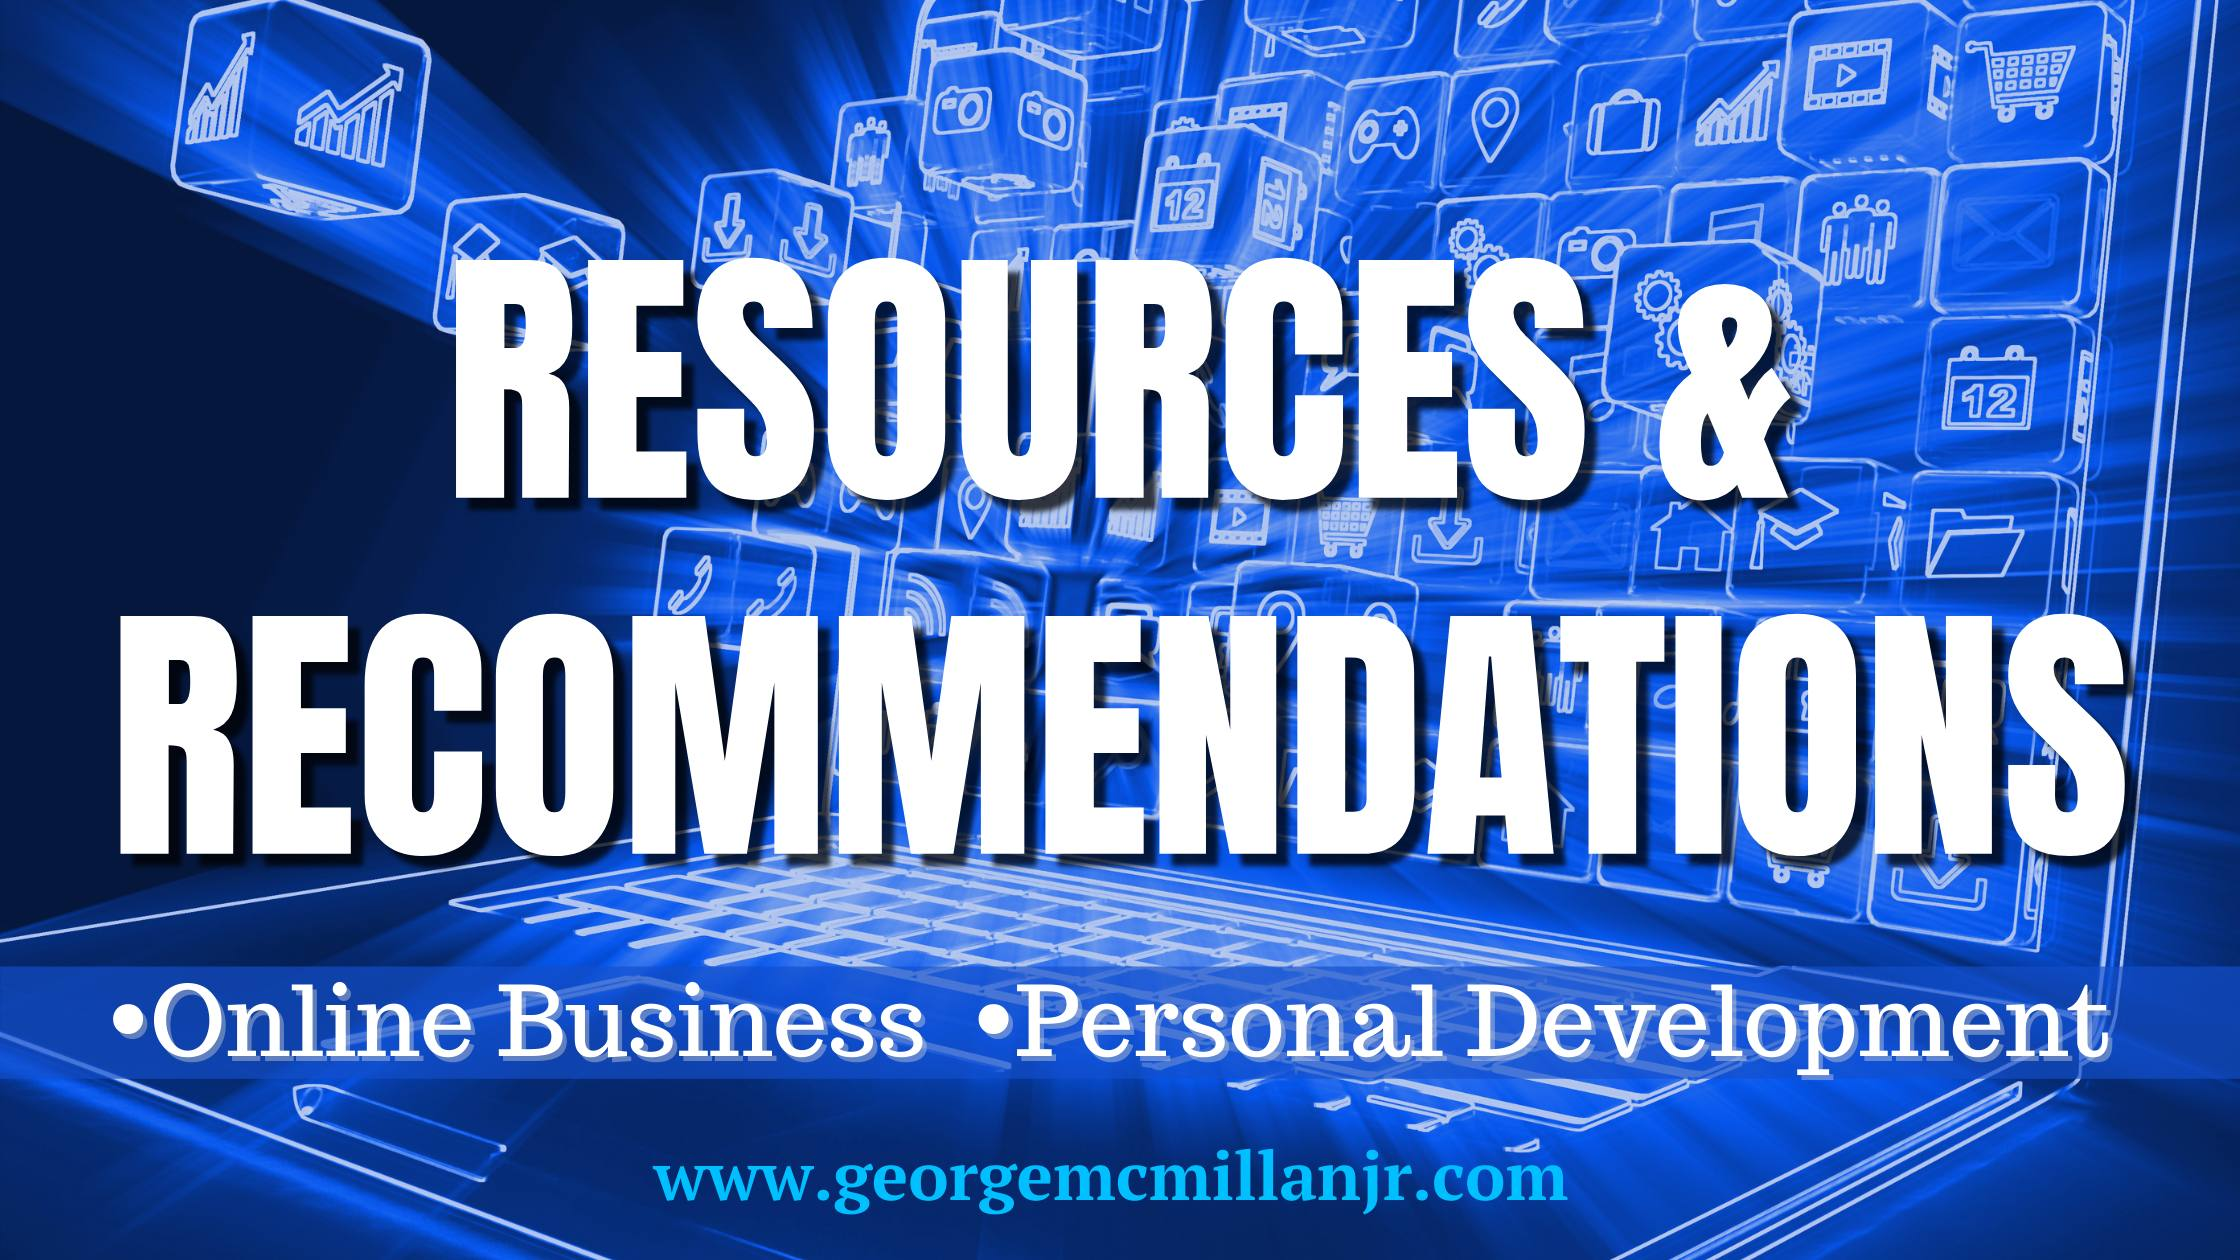 A blue banner image that says Resources and Recommendations. Online Business and Personal Development.